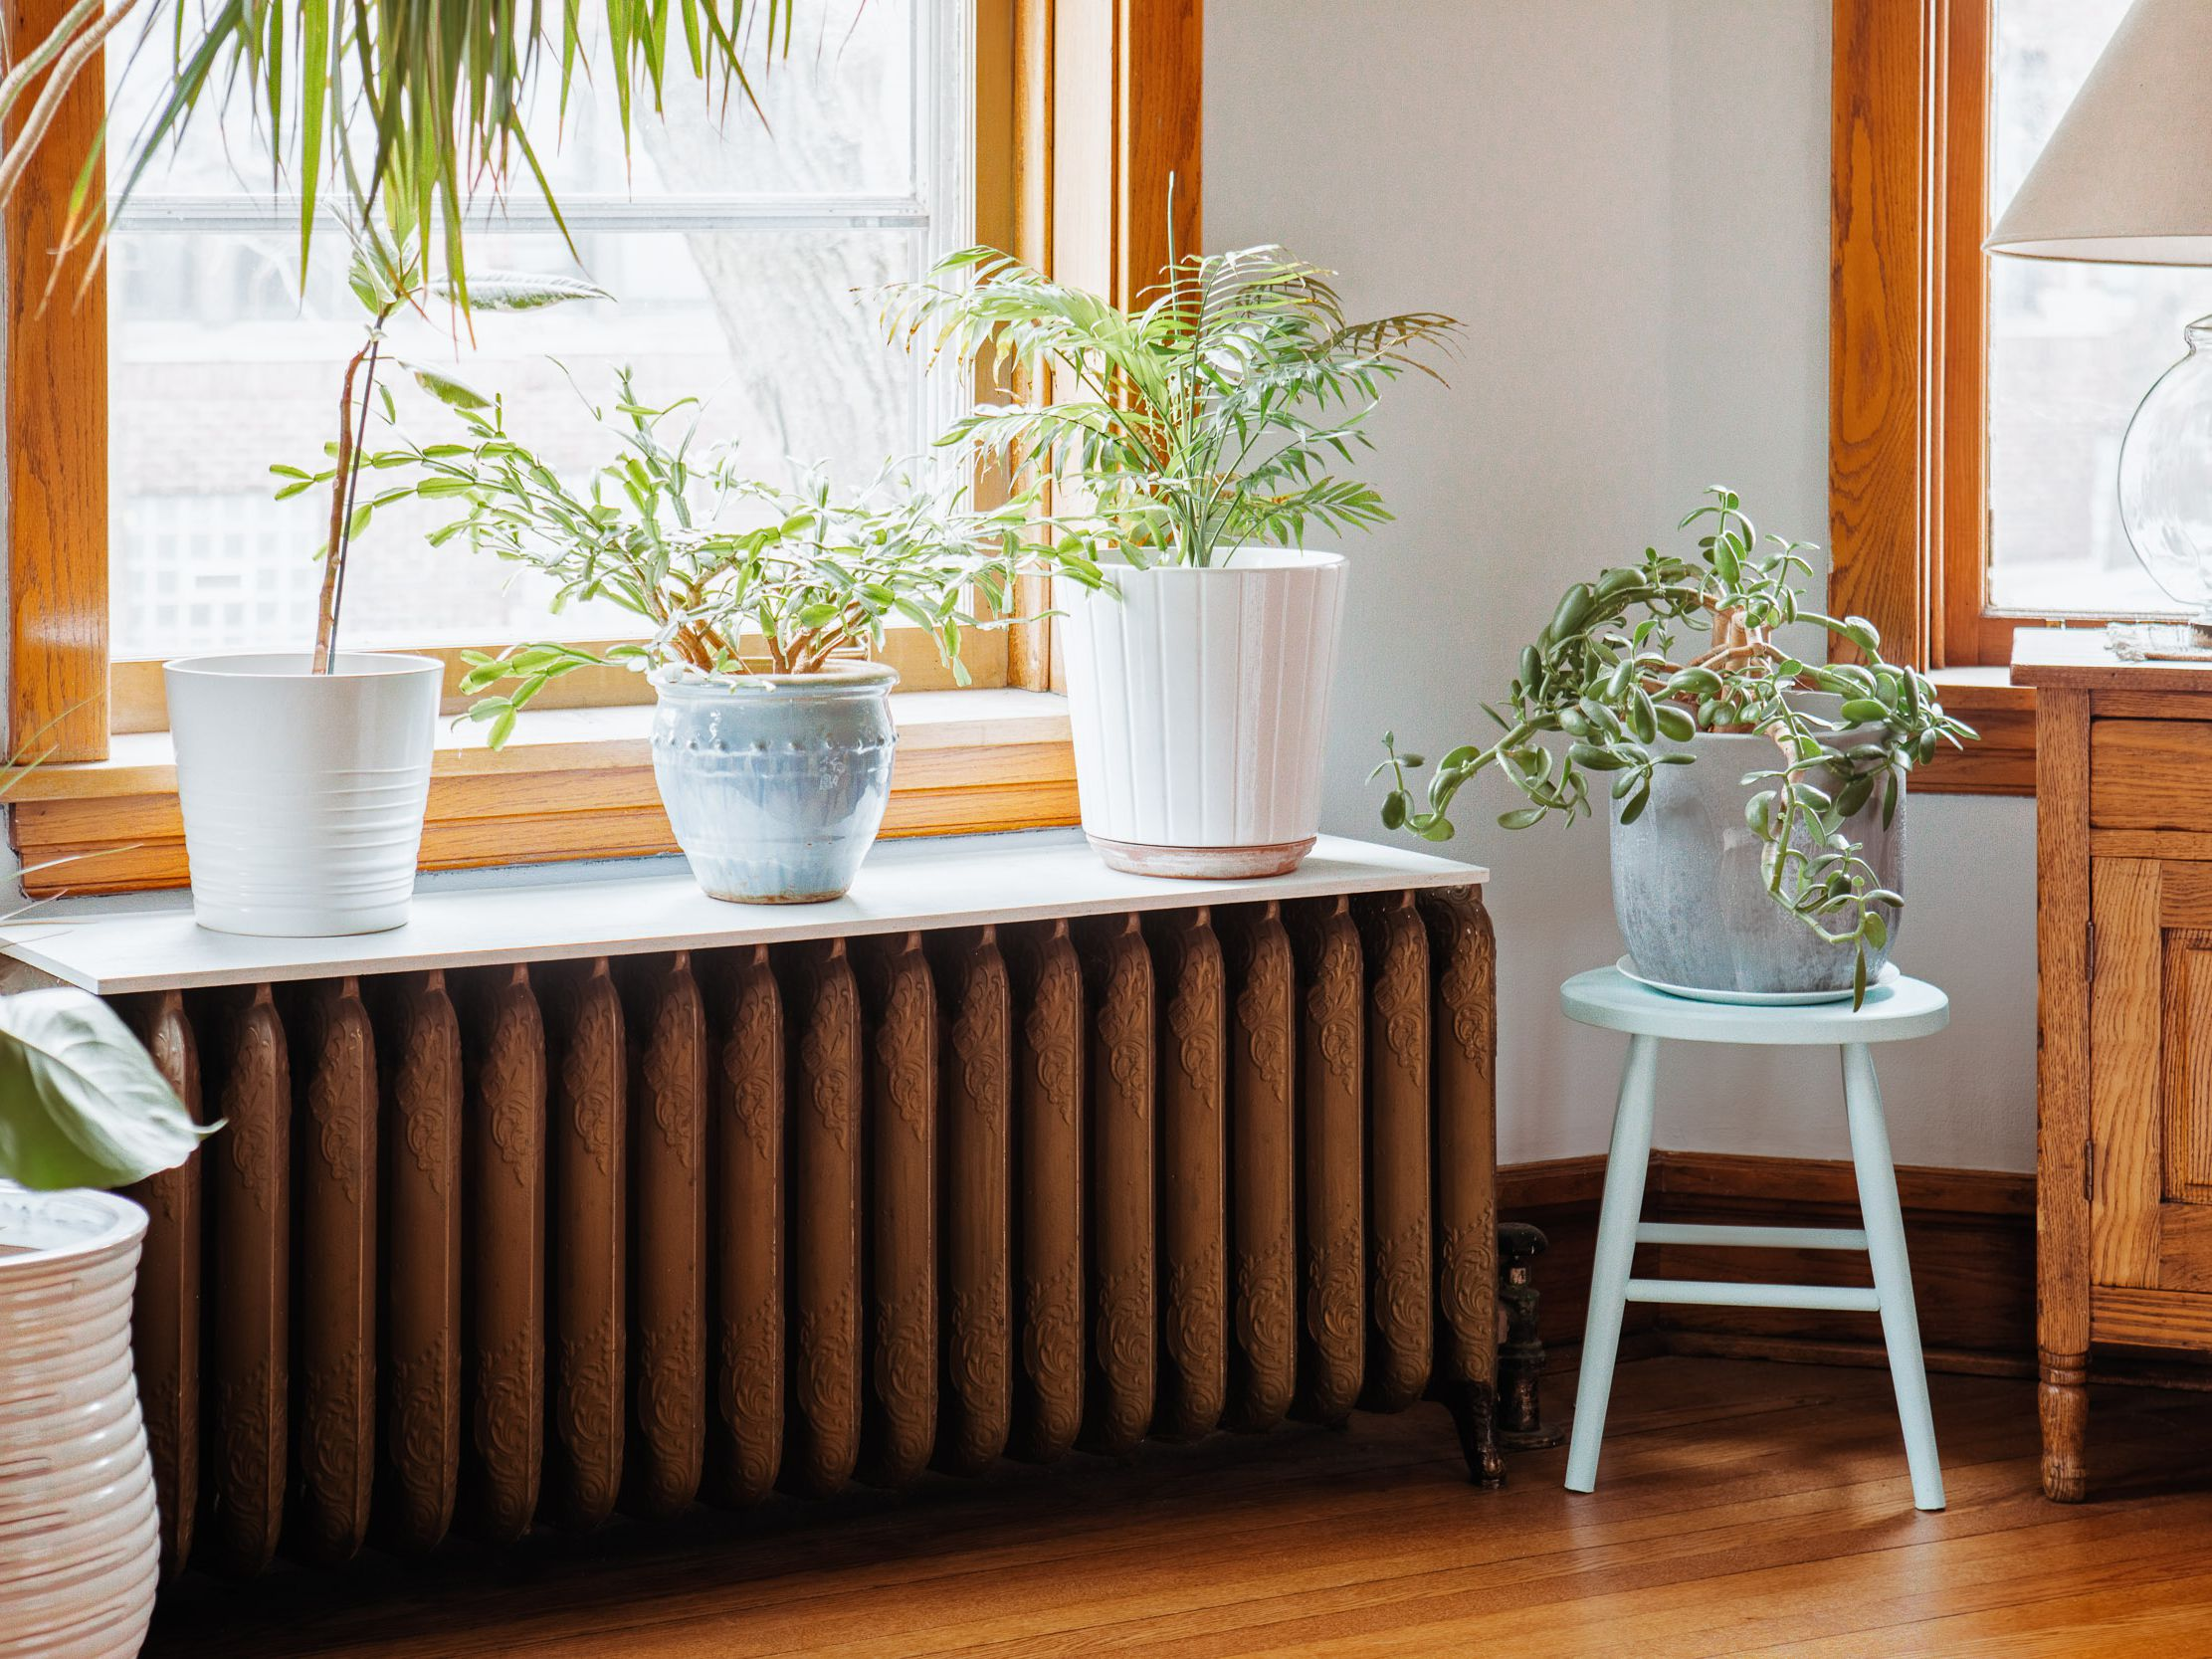 10 Stylish Diy Radiator Covers